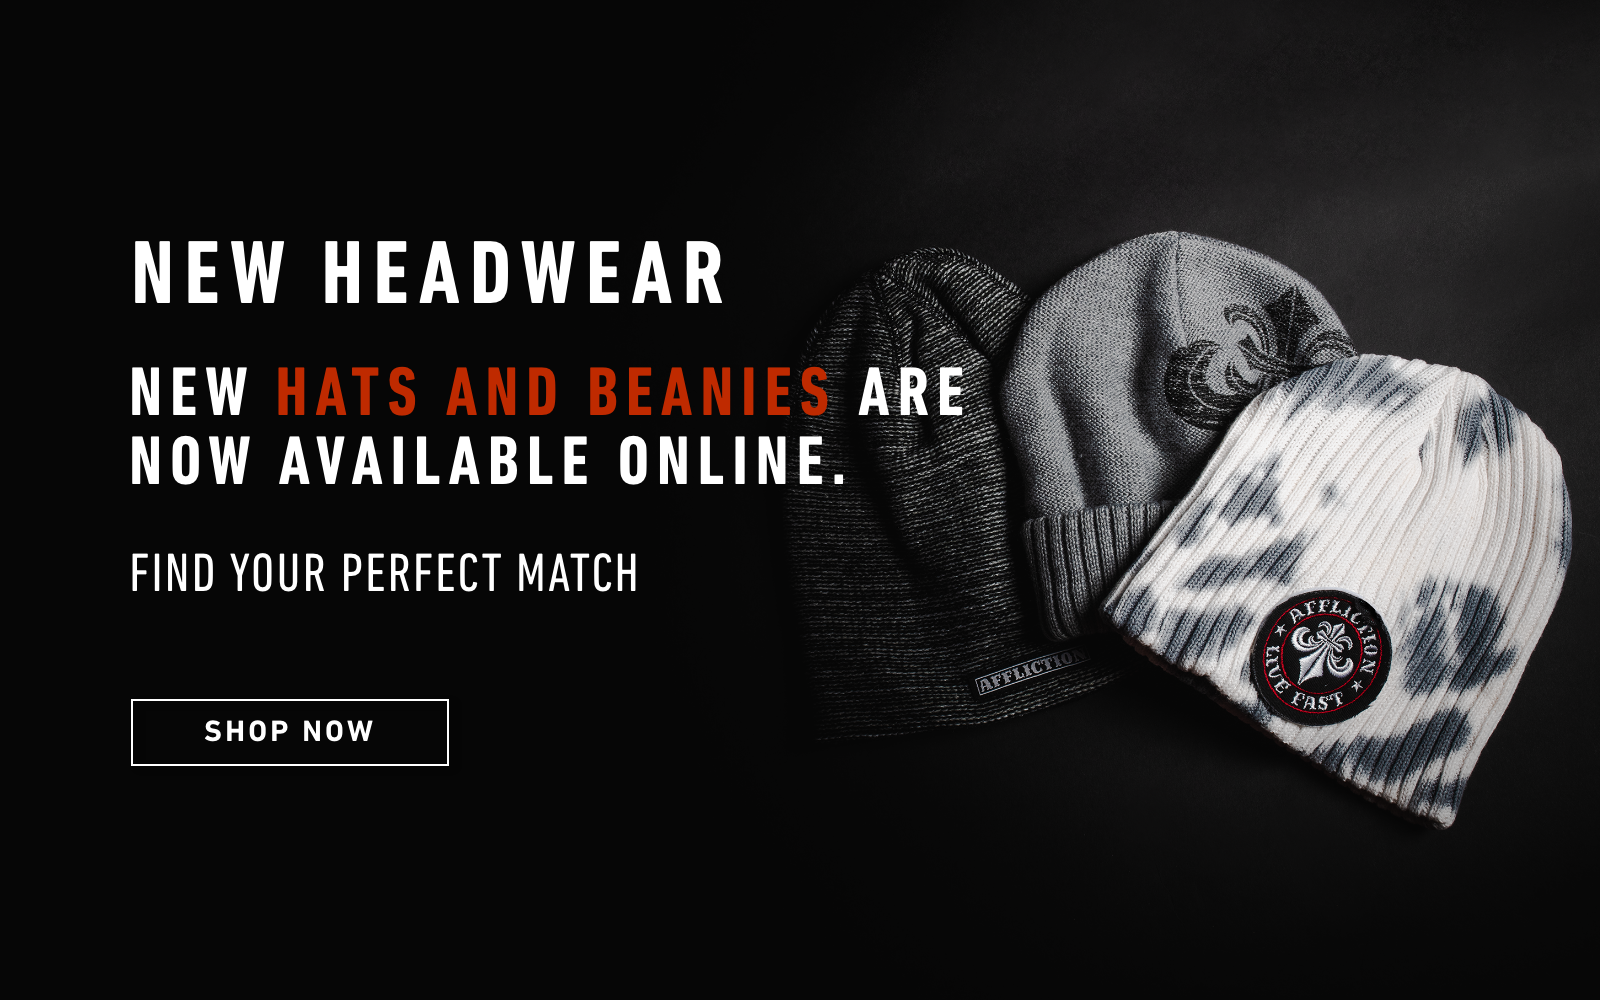 new headwear new hats and beanies are now available online find your perfect match shop now